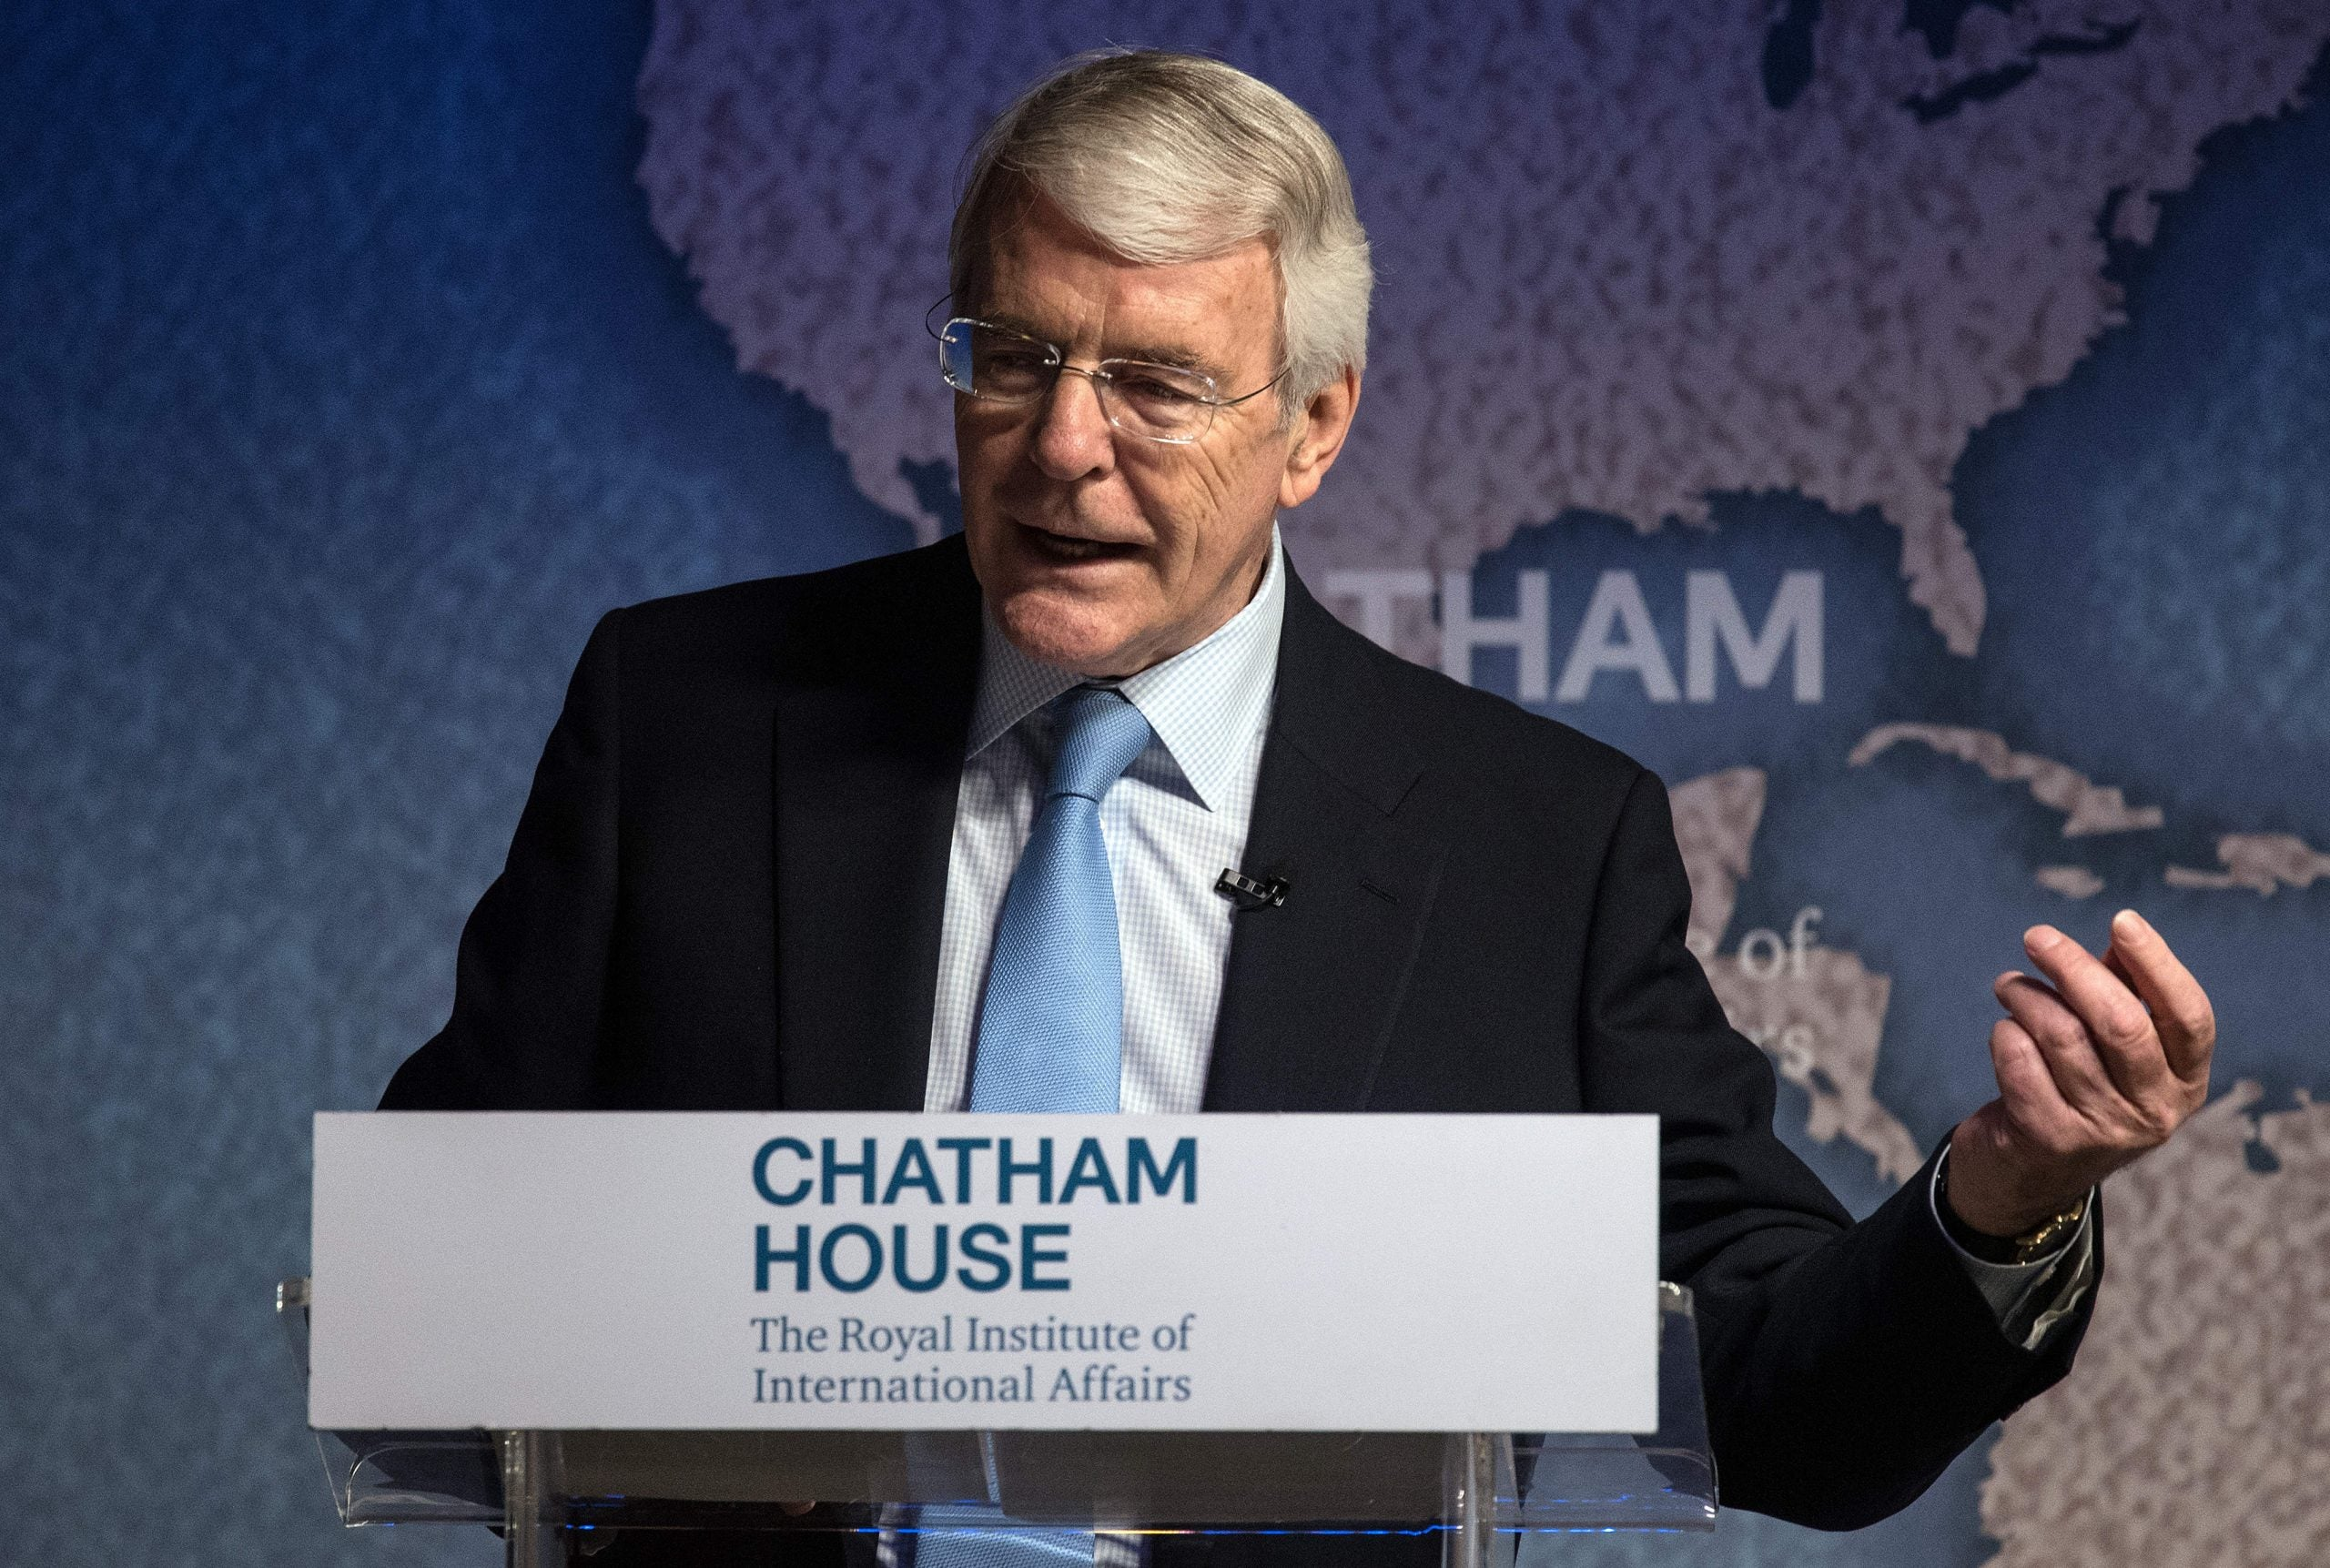 The Brexiteers' response to John Major shows their dangerous complacency